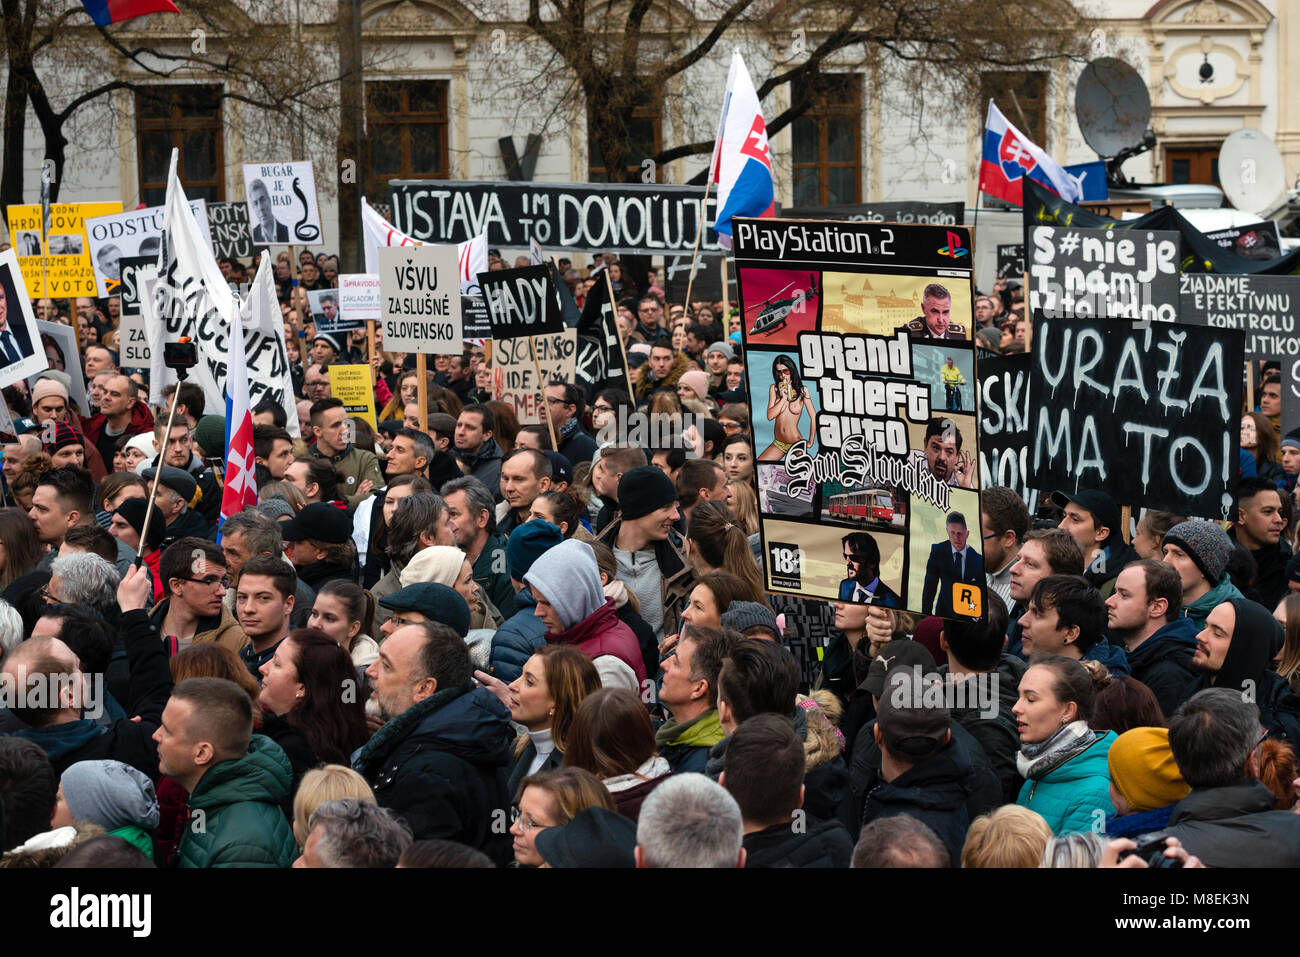 BRATISLAVA, SLOVAKIA - MAR 16, 2018: Protesters hold signs during an anti-government demonstration demanding a change Stock Photo